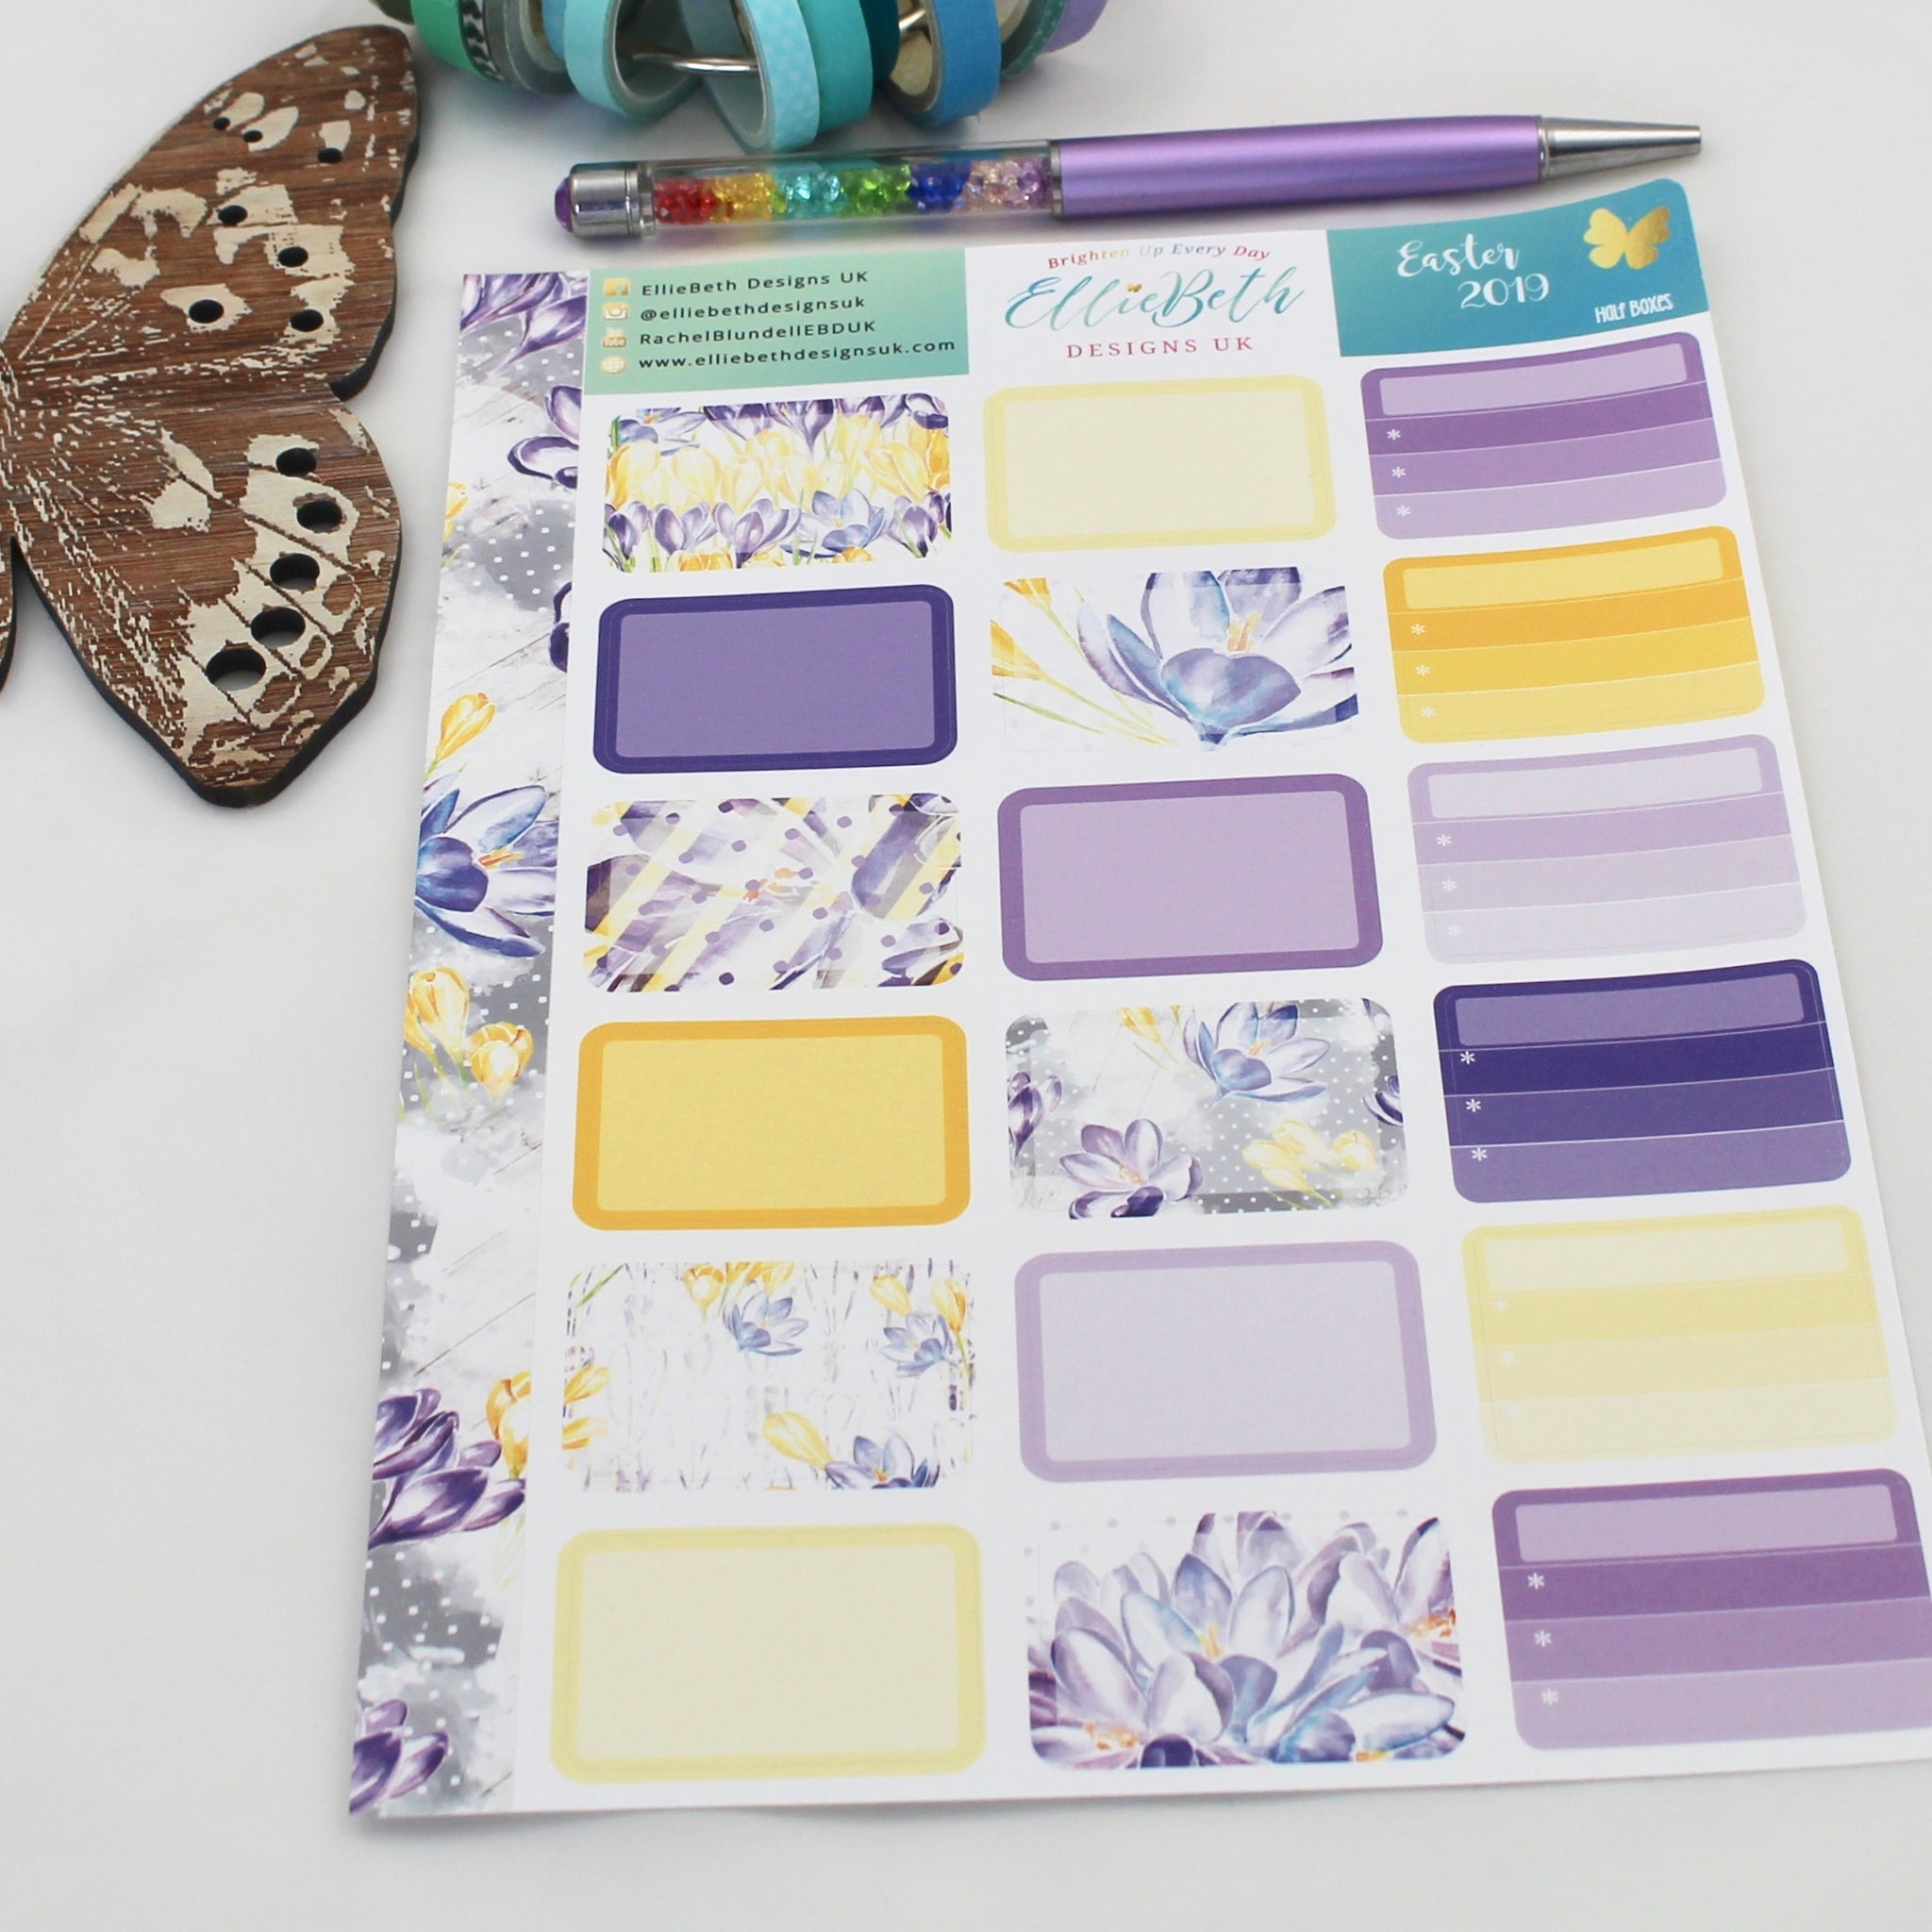 Easter 2019 - Half Boxes -  A5 binder ready planner stickers